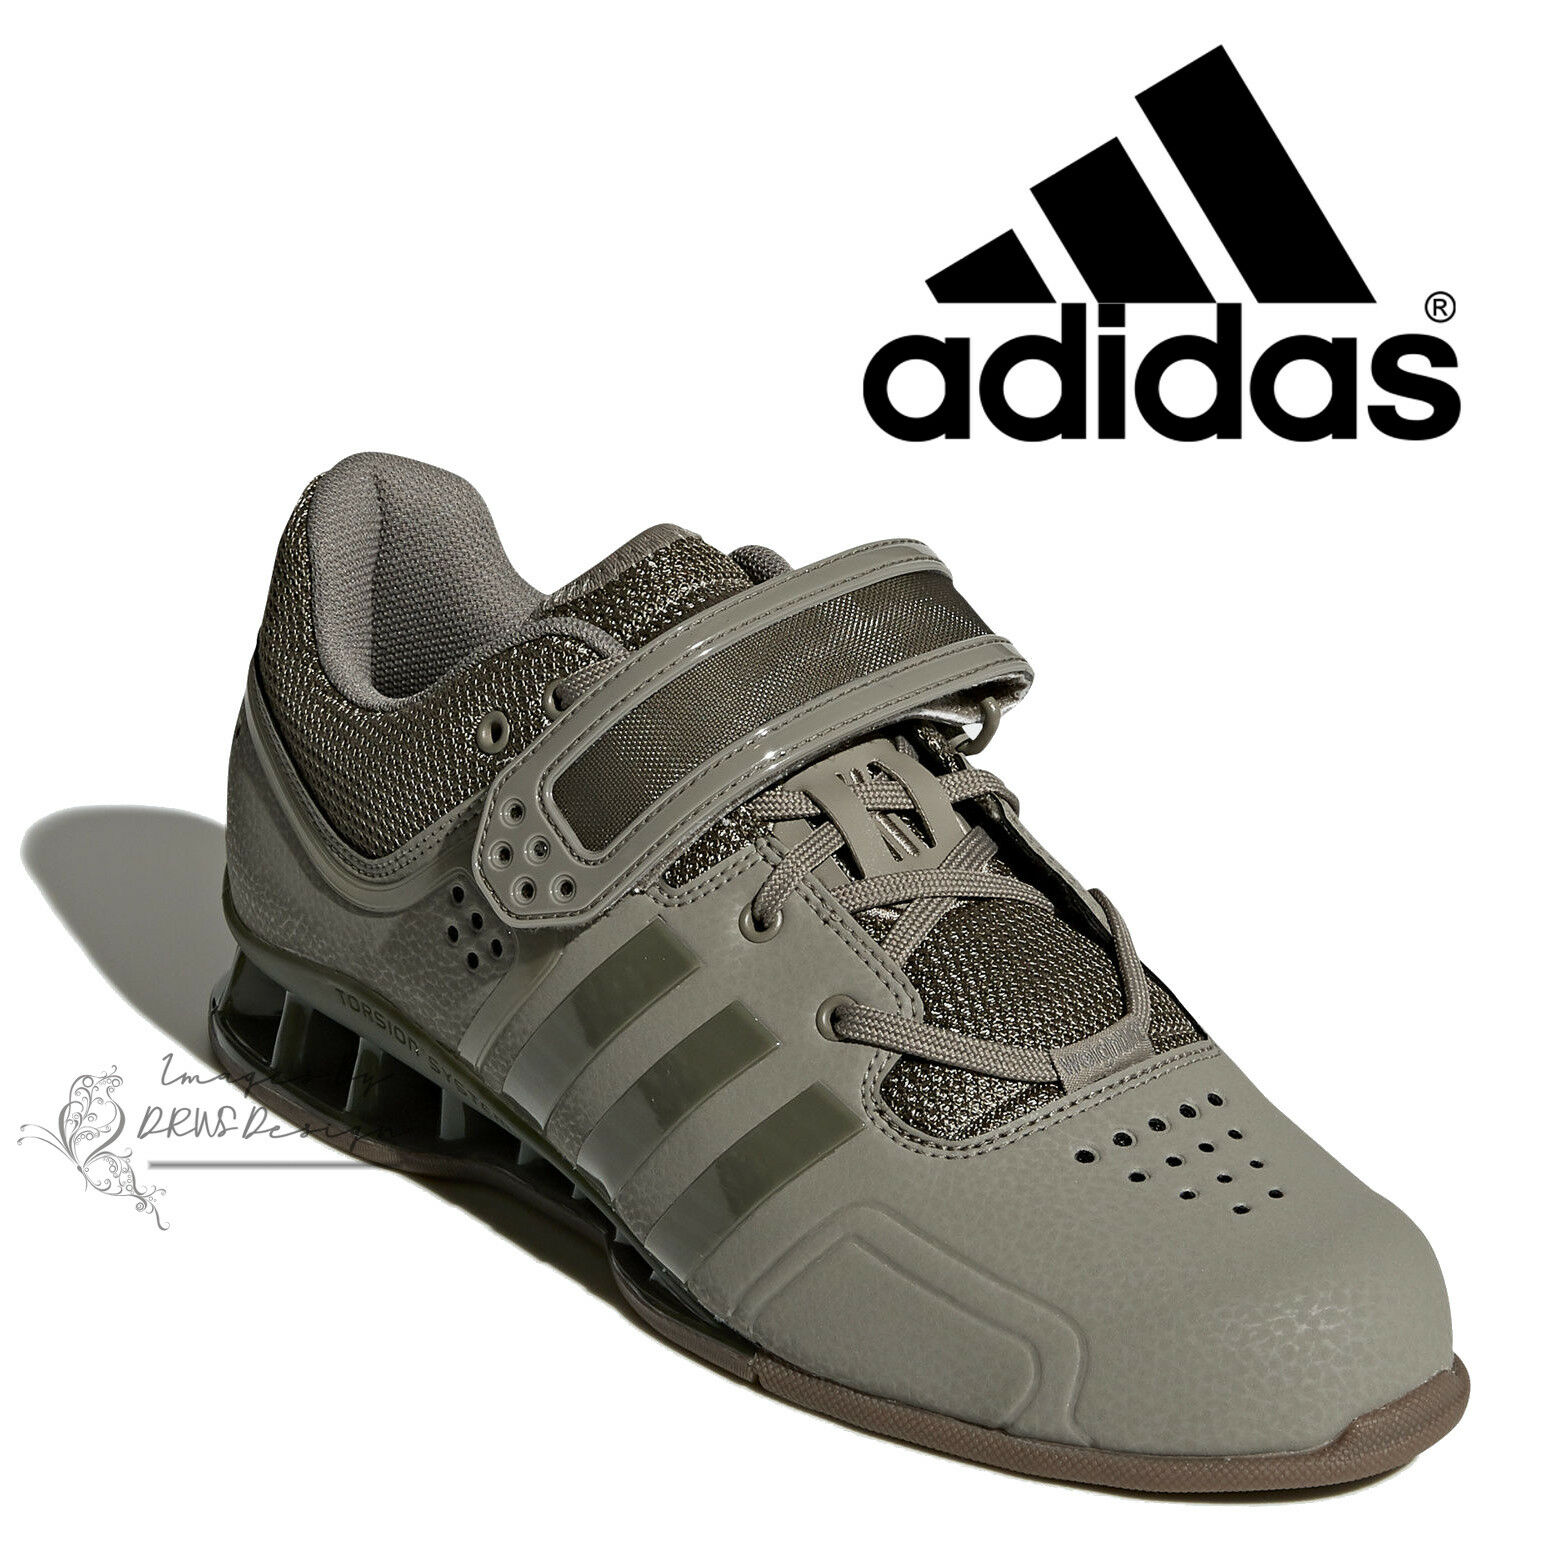 Adidas adiPower Men's Pro Weightlifting shoes Cargo Gym Trainers  DA9874  we offer various famous brand